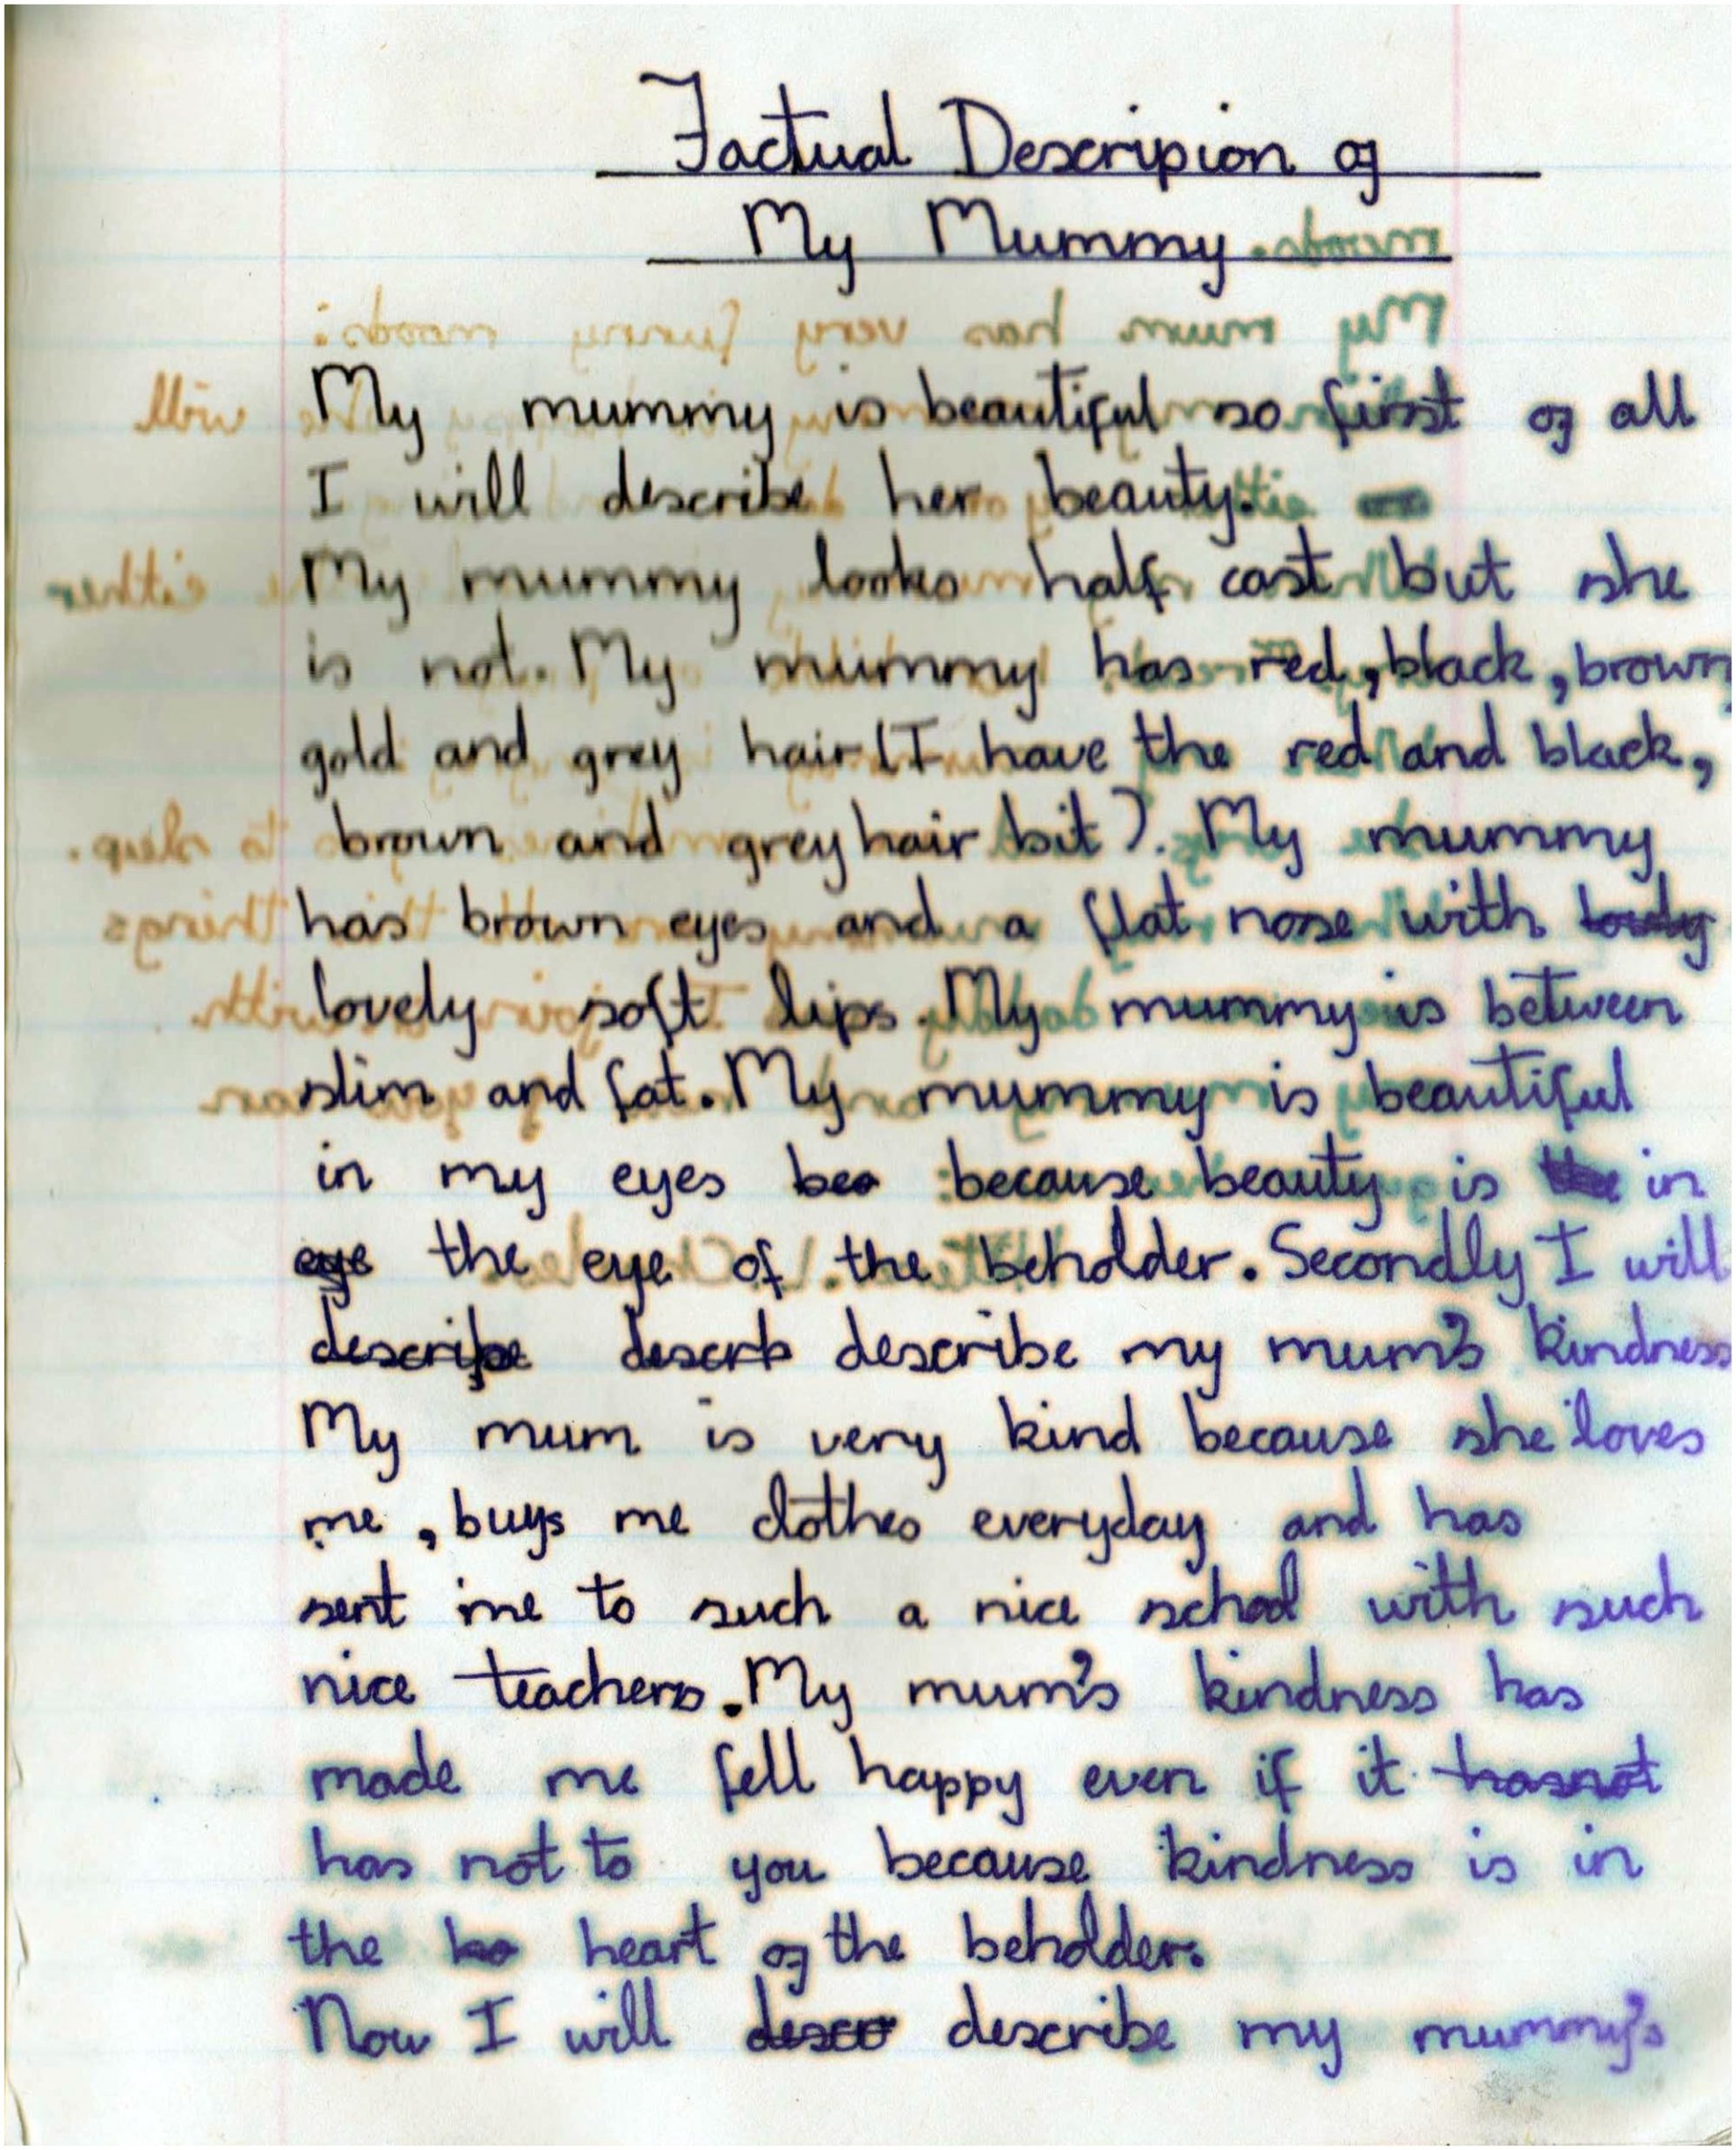 020 Letter To My Mother Love Mom Essay How Write Papers About Example Phenomenal Mothers Wikipedia In Tamil On Gujarati 1920